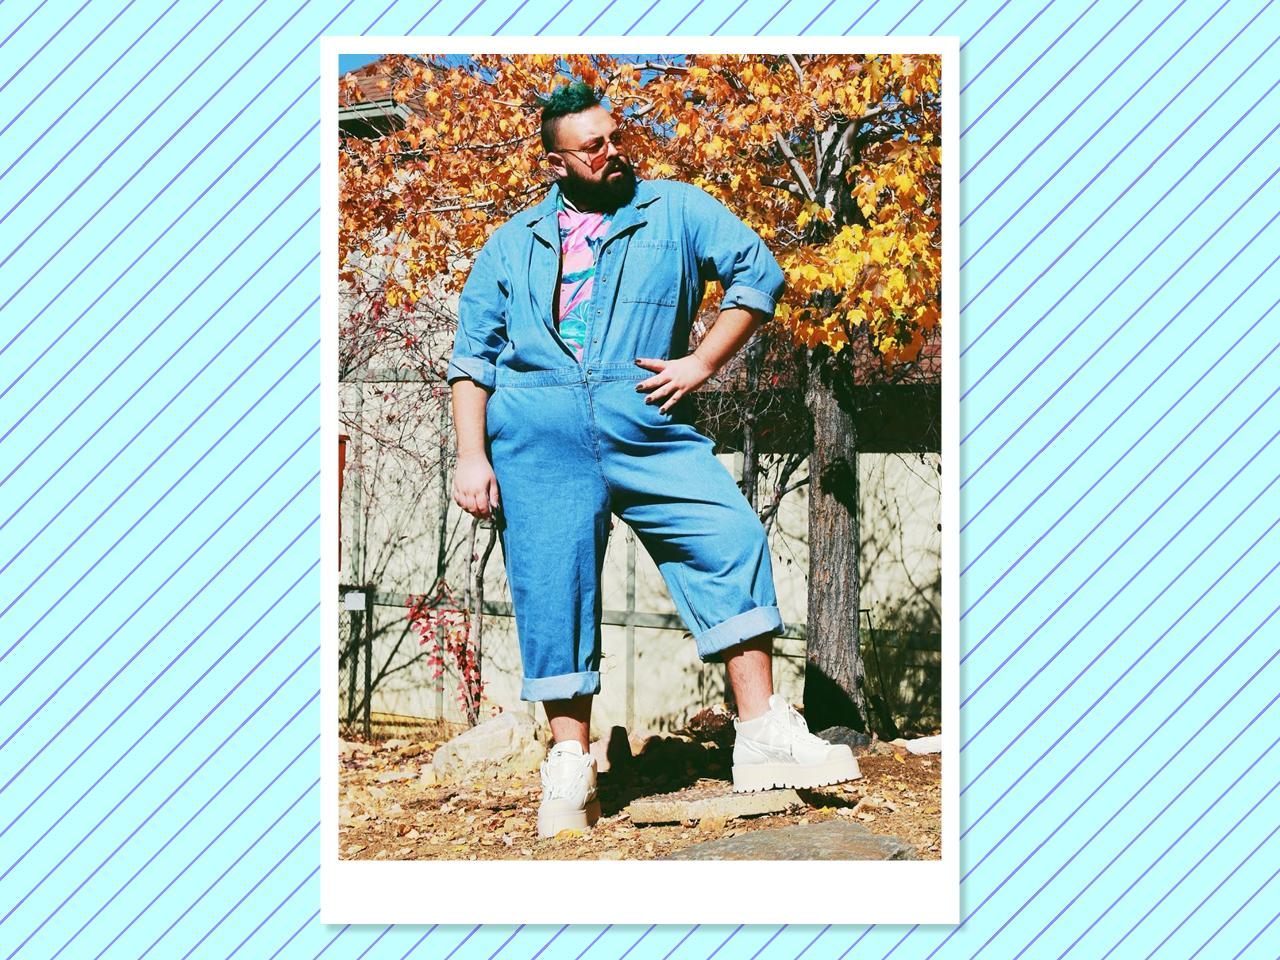 "<p></p><p><a rel=""nofollow"" href=""https://www.instagram.com/abearnamedtroy/"">Solomon</a> is constantly pushing the boundaries of men's fashion. Whether he is in a kelly green women's suit and booties or daytime sequins, he refuses to play by anyone's rules but his own. (Photo: Courtesy of Troy Solomon) </p><p></p>"